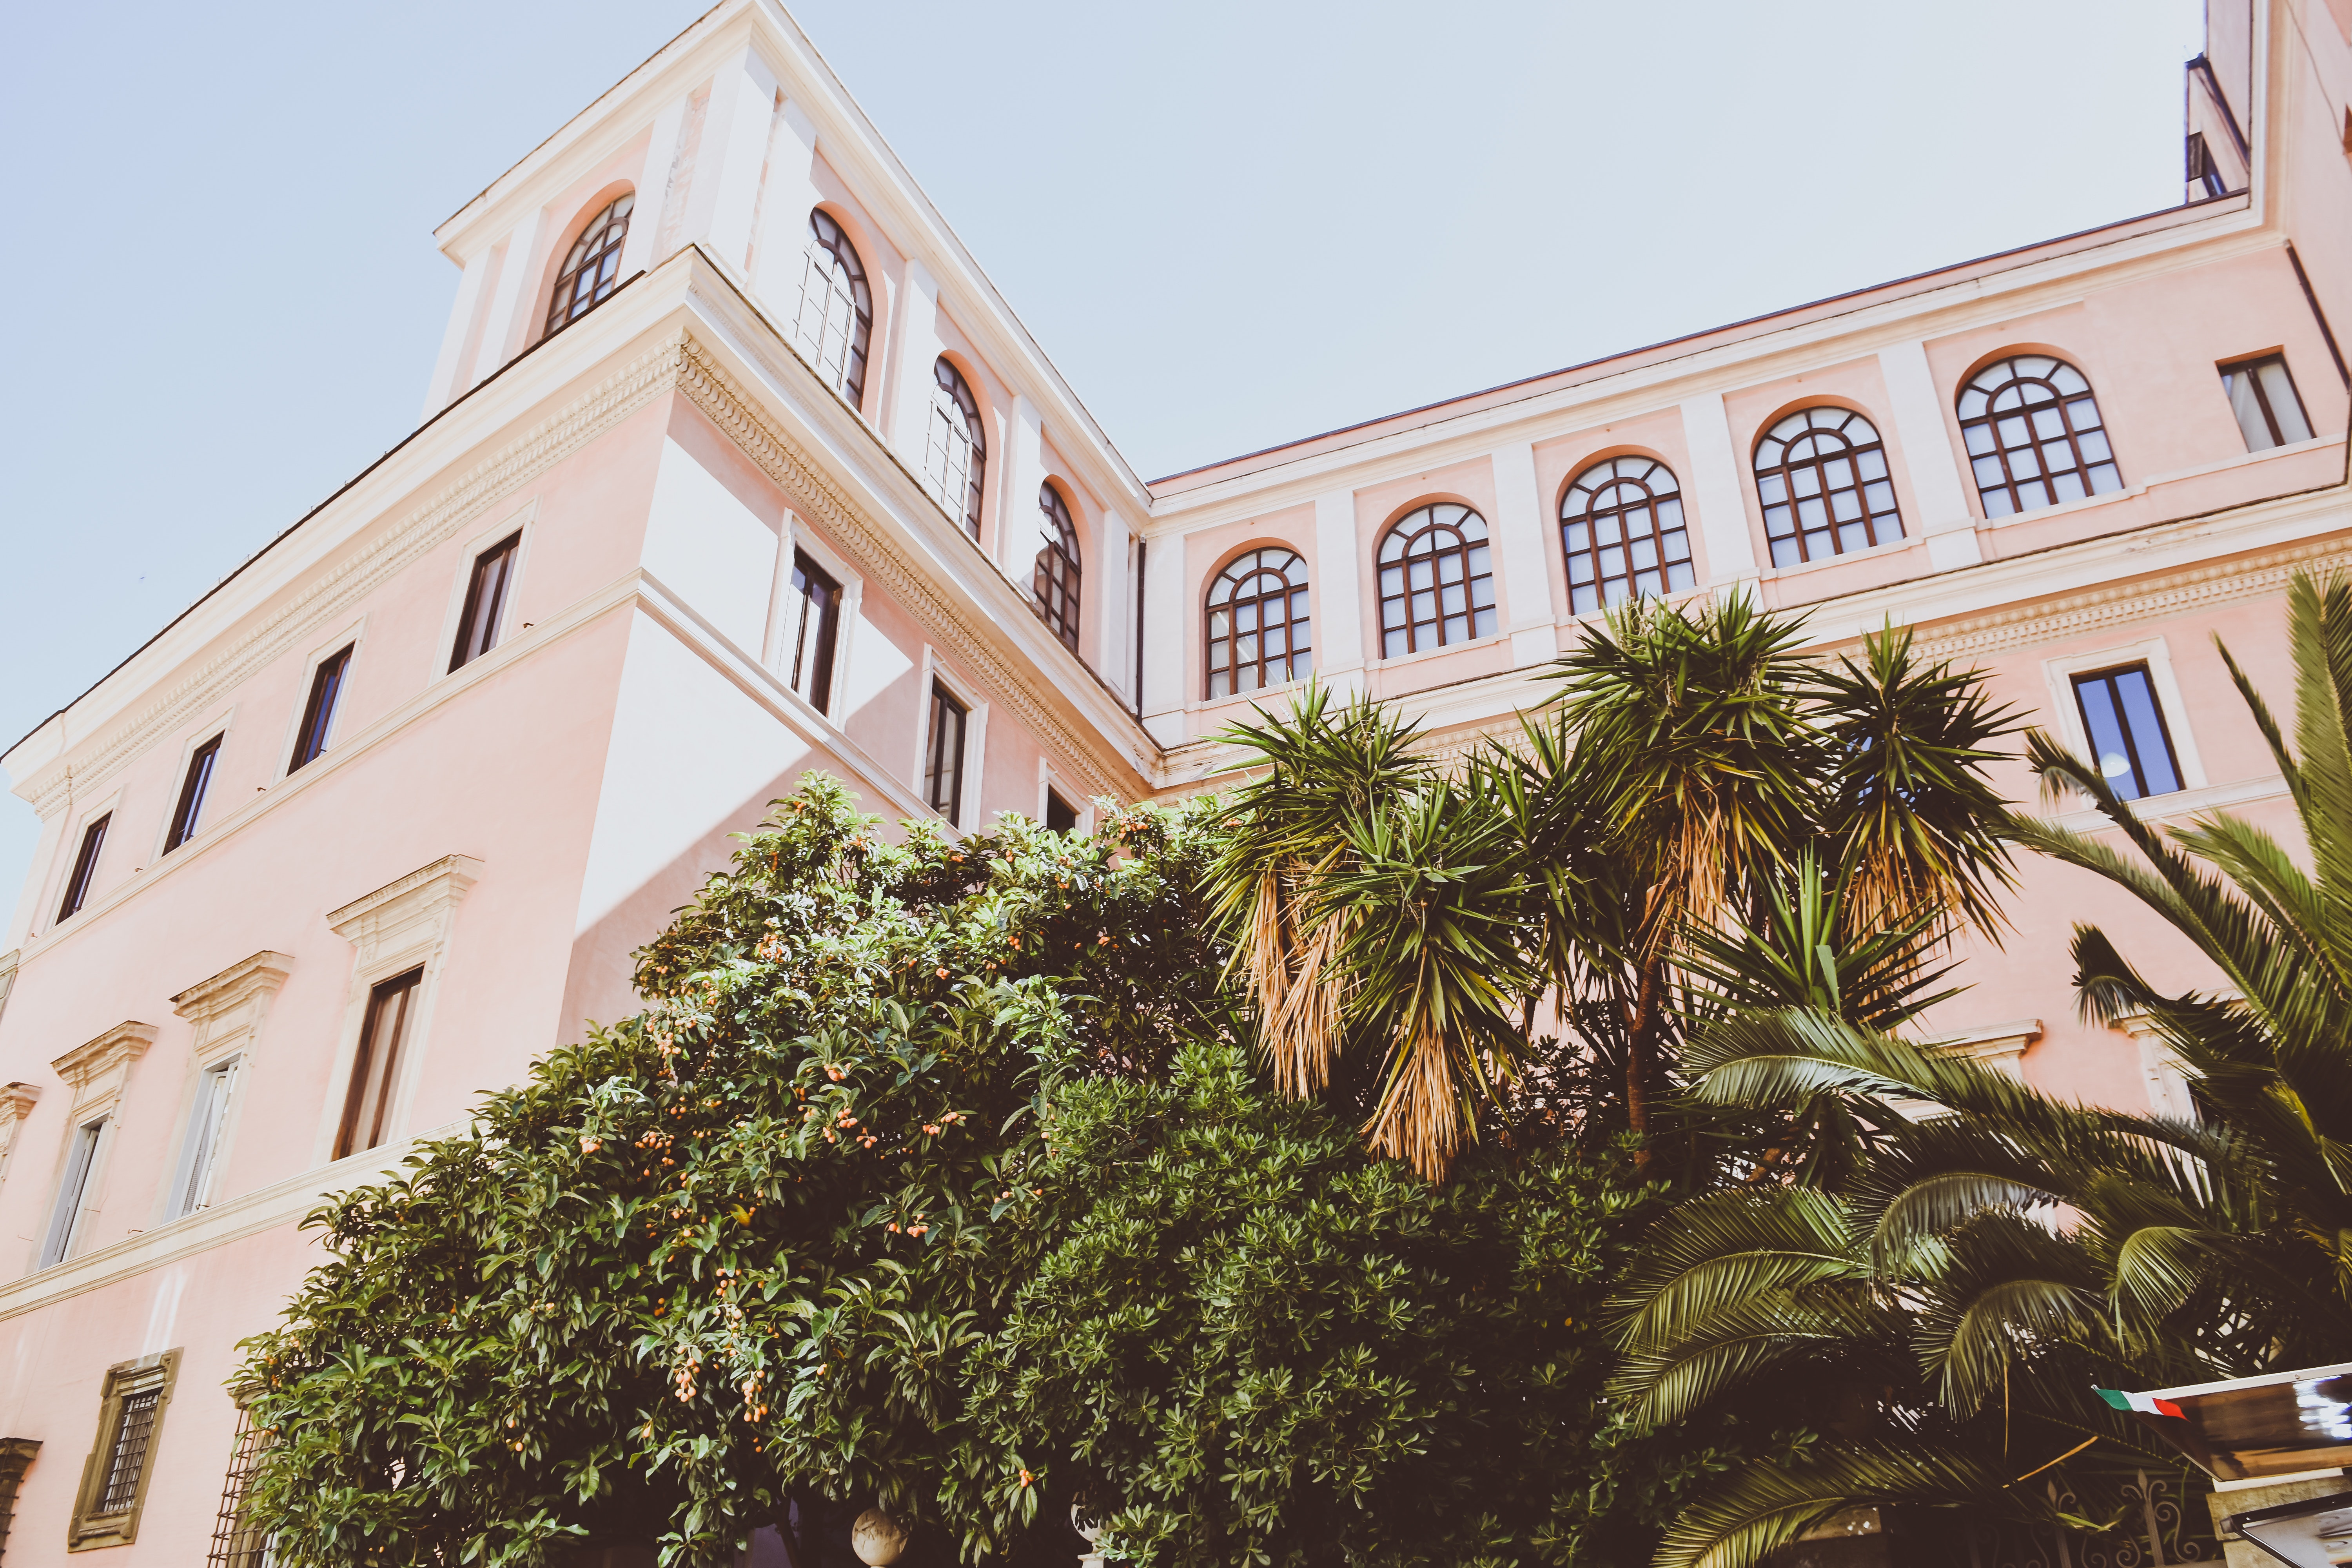 White Building, Architecture, Building, Daylight, Facade, HQ Photo